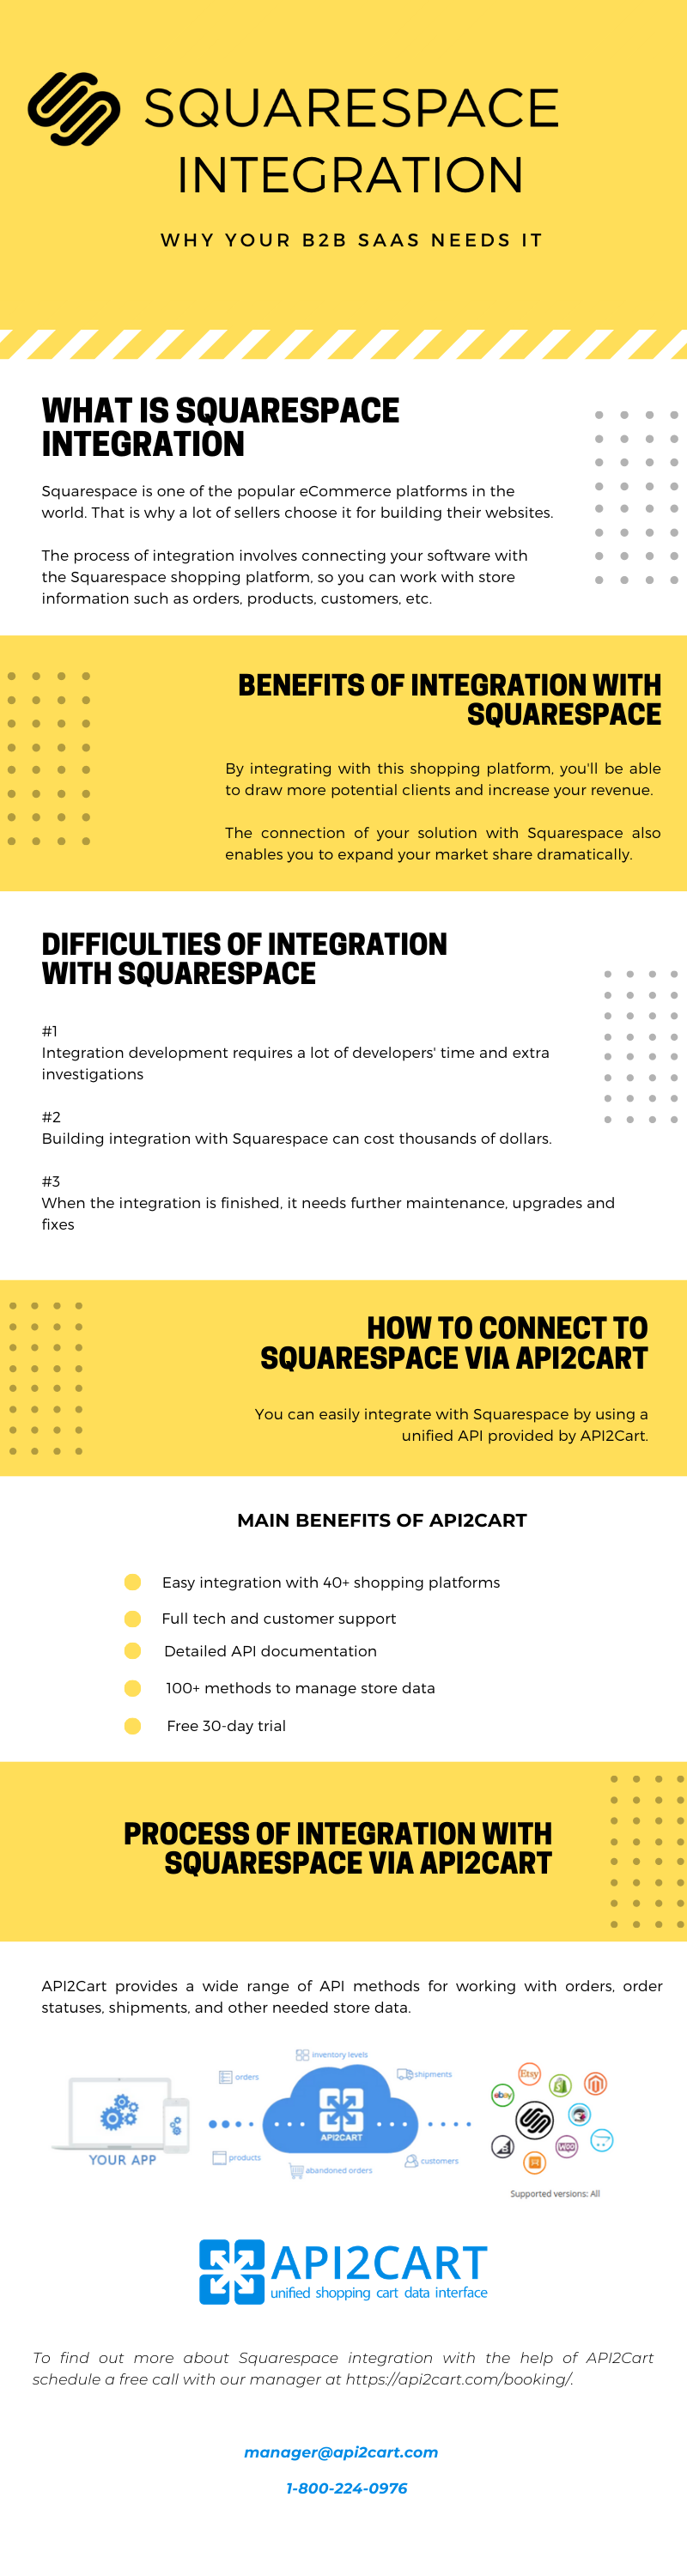 Integration with Squarespace: A Timely and Worthwhile Business Enhancement [Infographic]